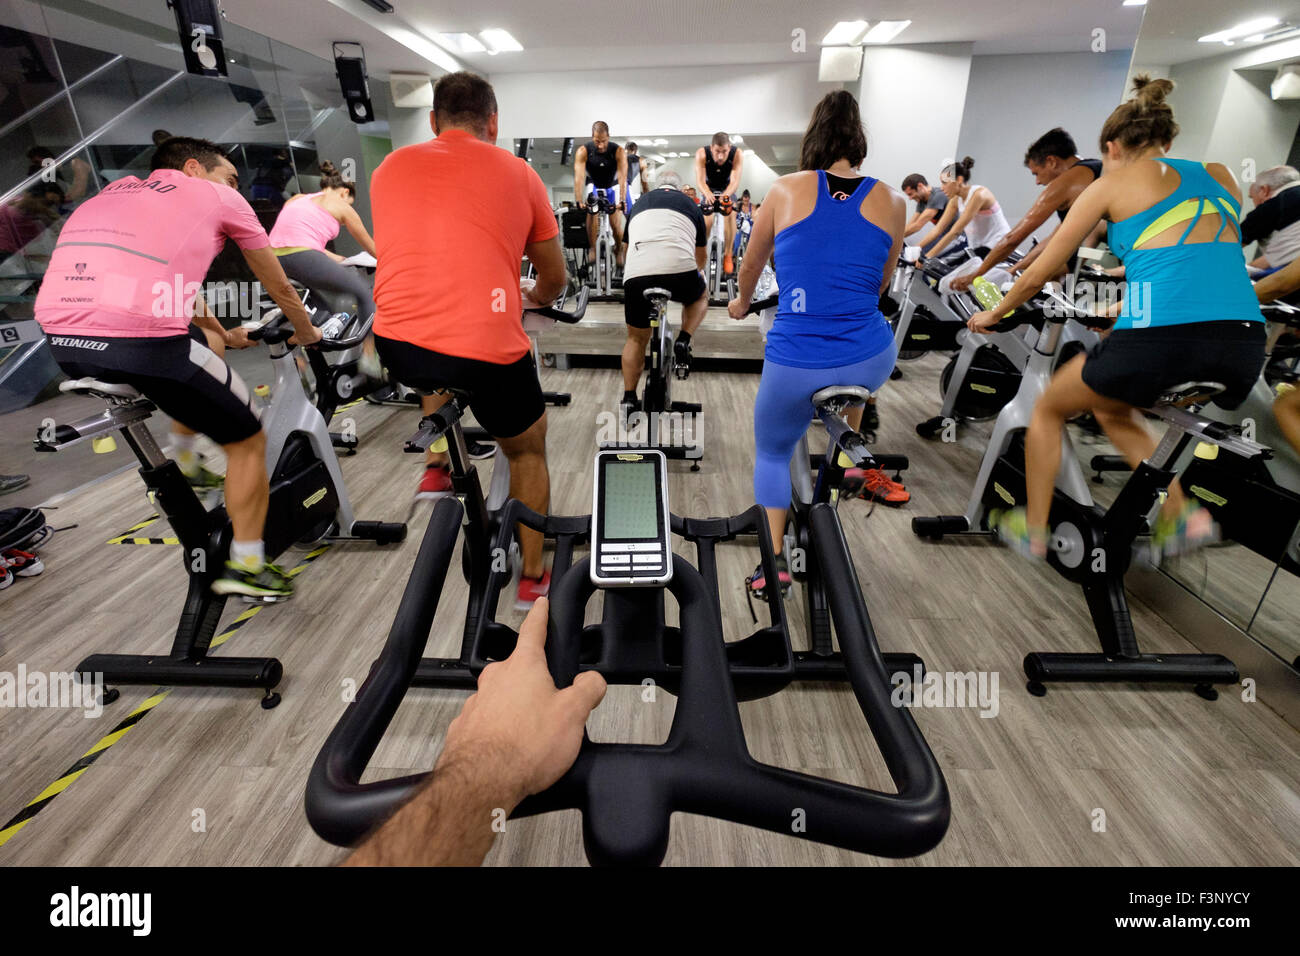 First person perspective of a man riding a stationary bicycle during a spinning class at the gym - Stock Image